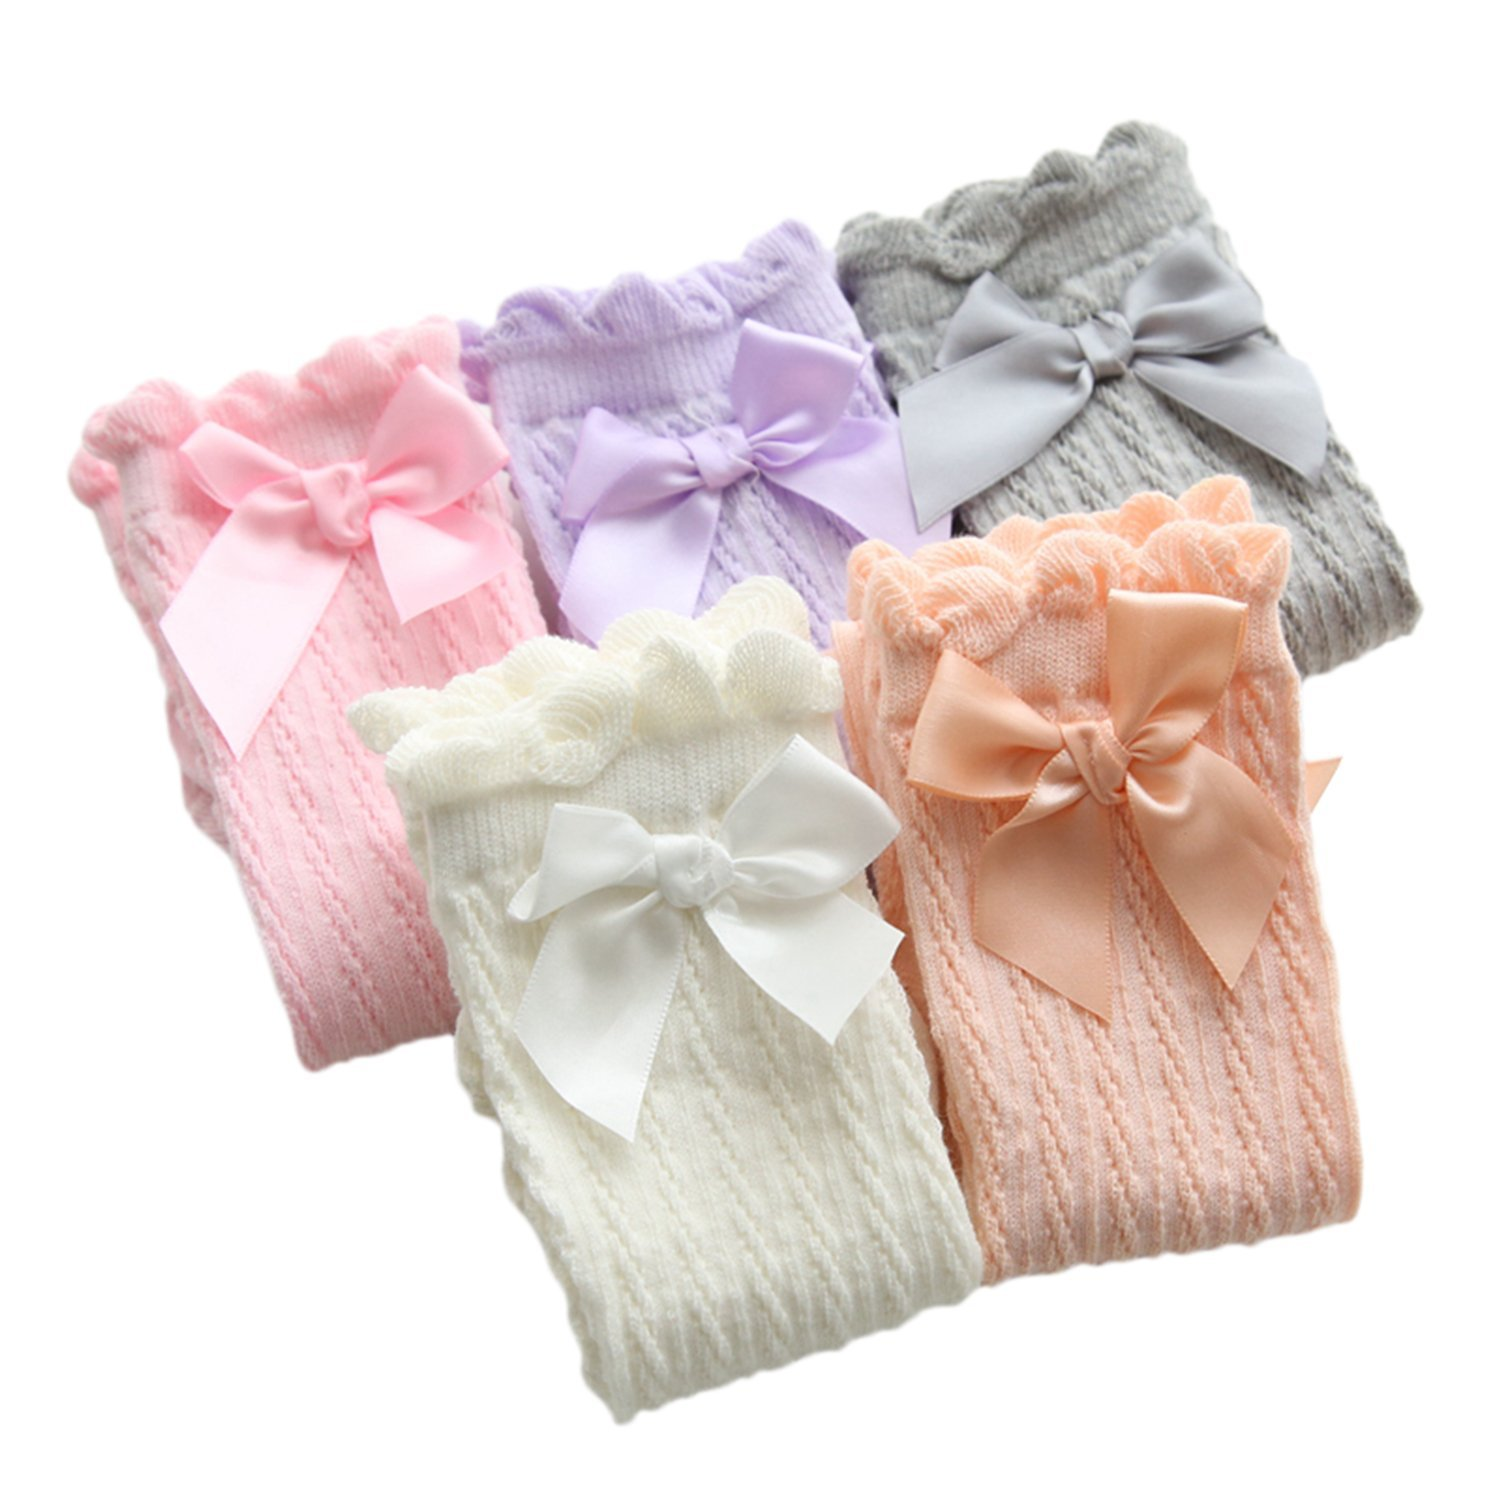 XPX Garment 5 Pack Bow Kids Girls Knee High Socks Frilly Baby Girls Long Socks 2-12 Years